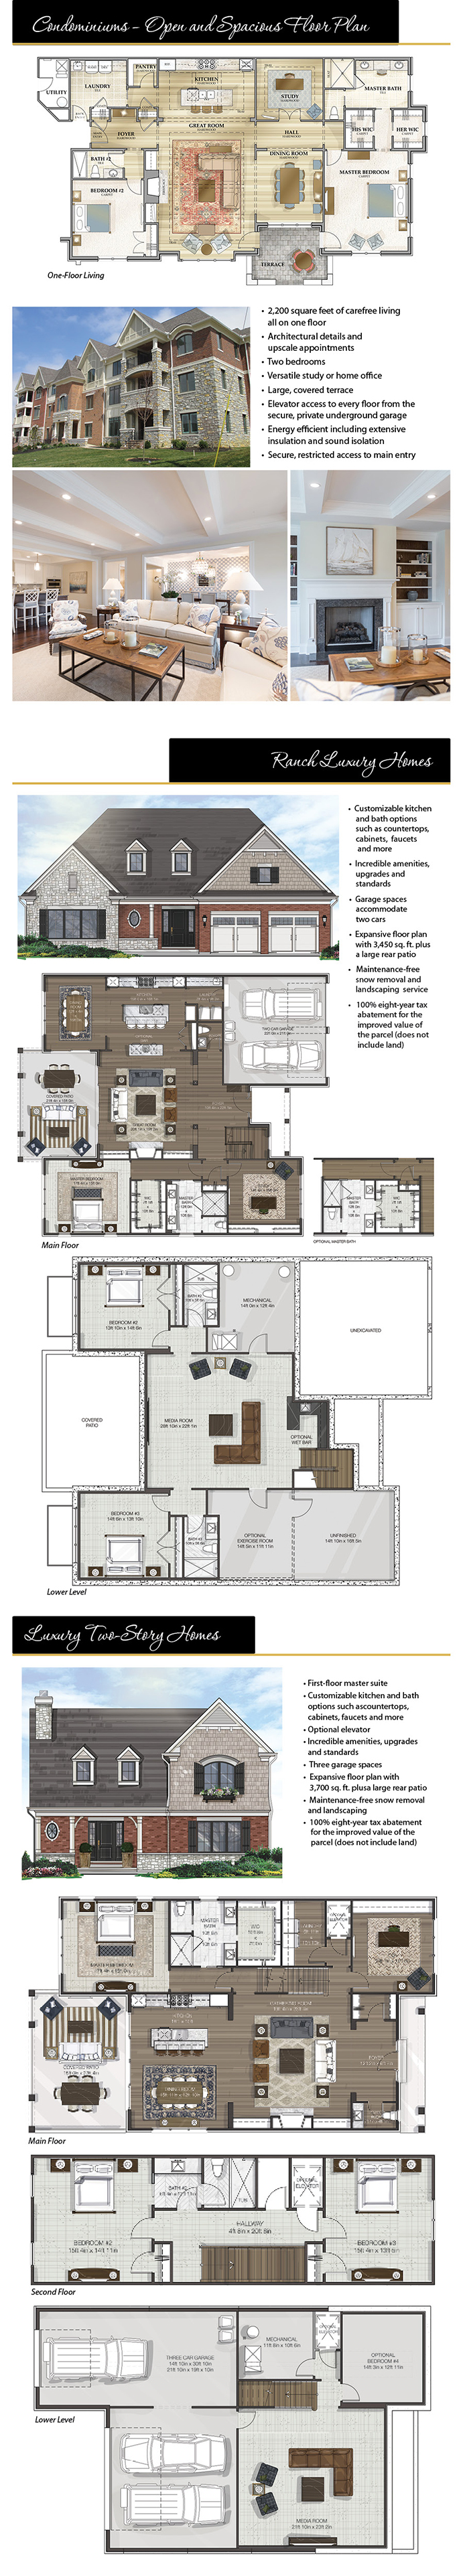 Park Manor Floor Plan Rendering